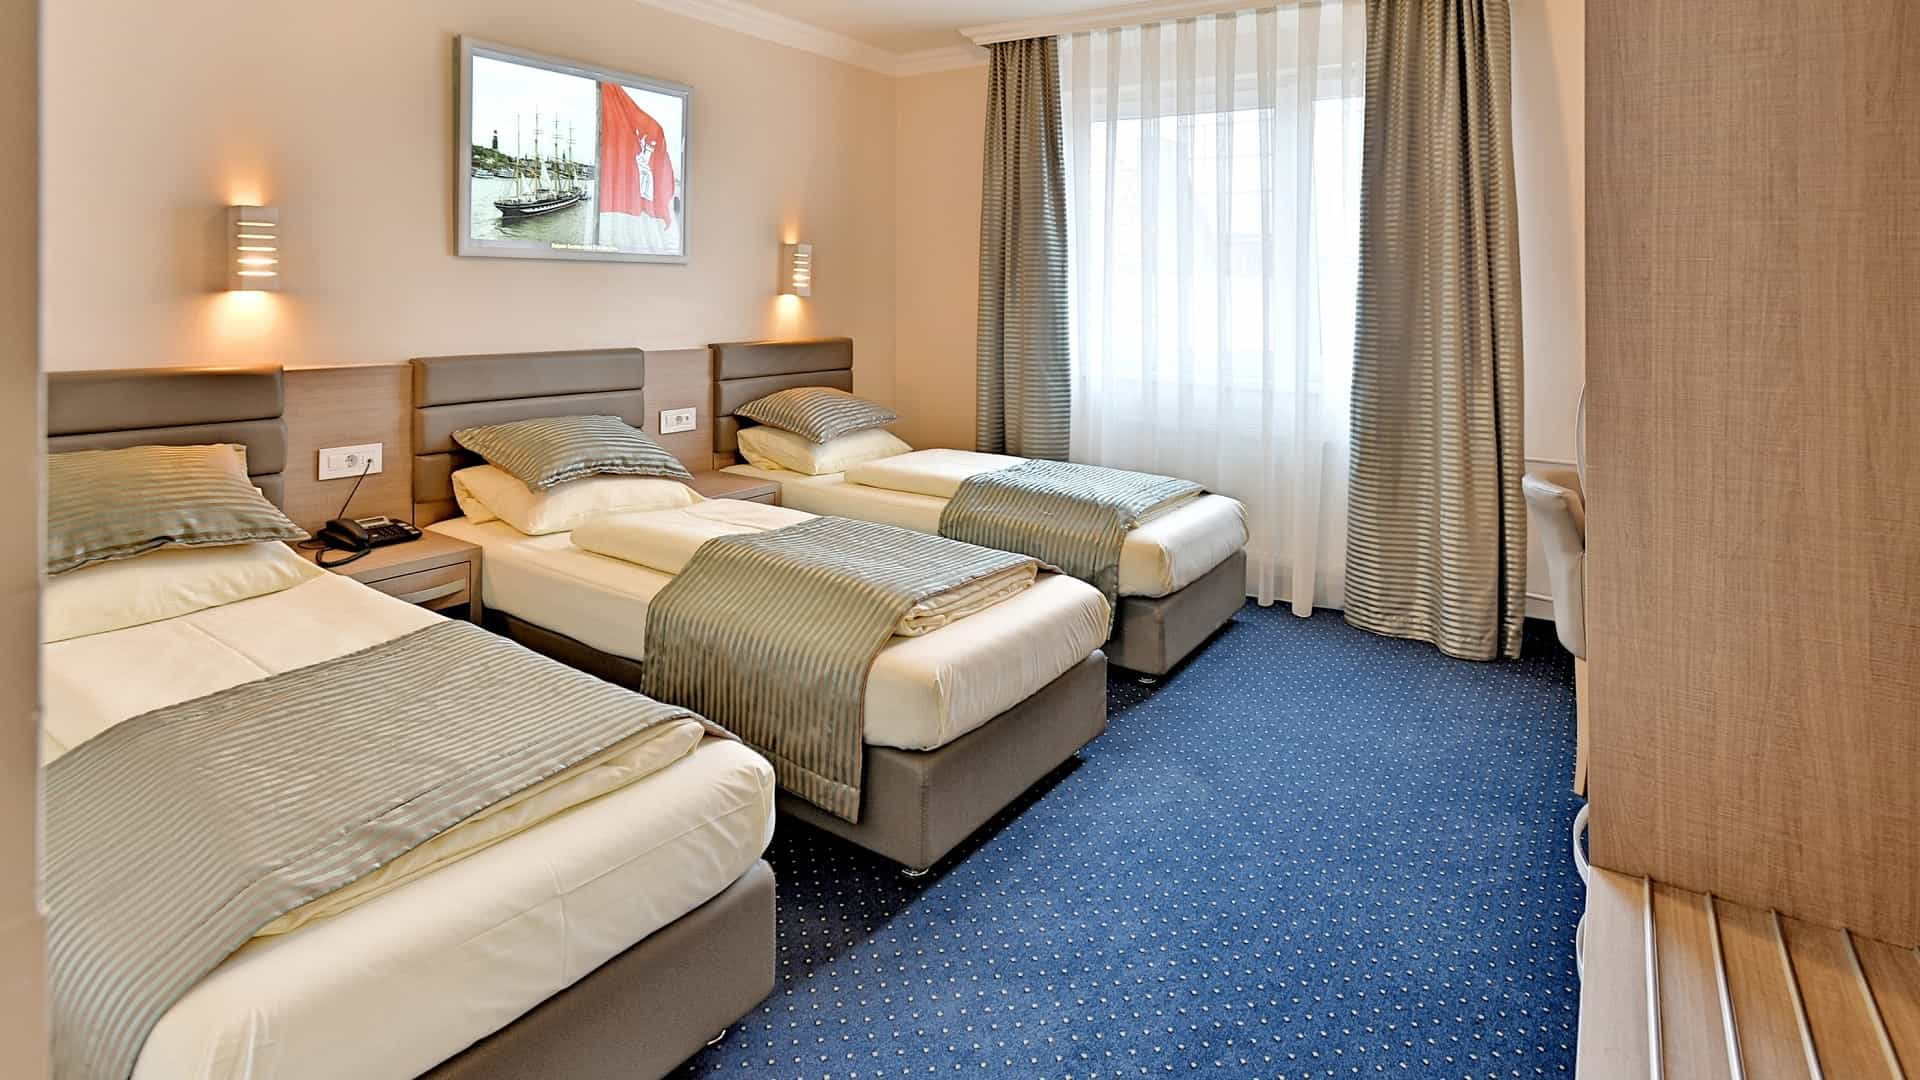 Triple room in St.Joseph Hotel Hamburg next to Reeperbahn in Hamburg-City on St.Pauli Kiez